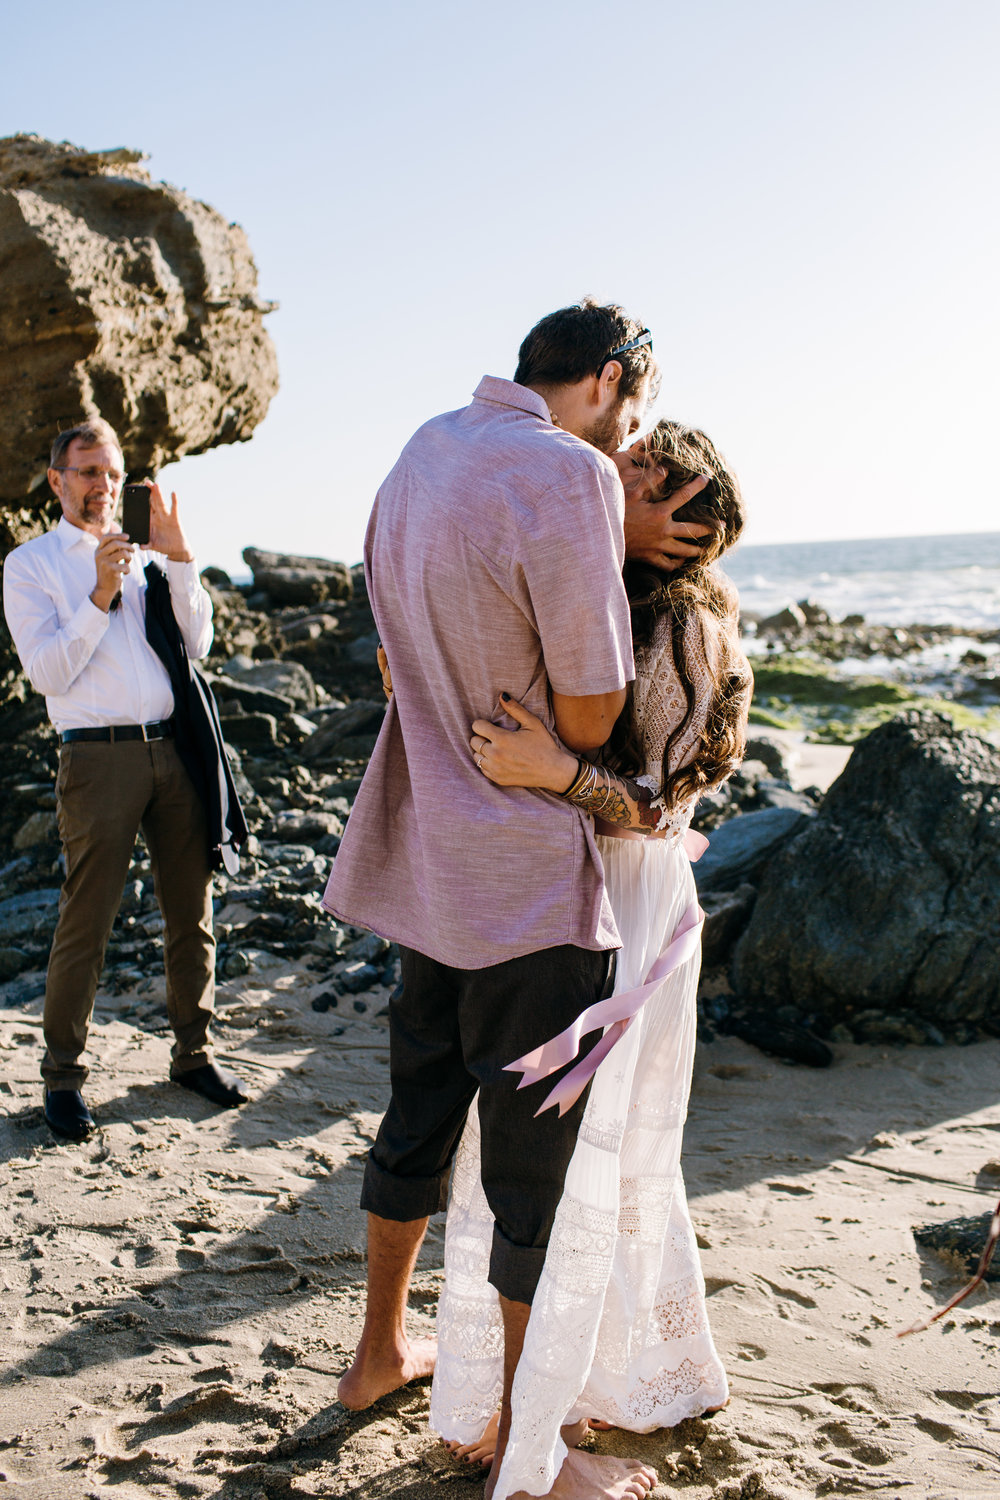 KaraNixonWeddings-LagunaBeach-Tablerock-Elopement-18.jpg